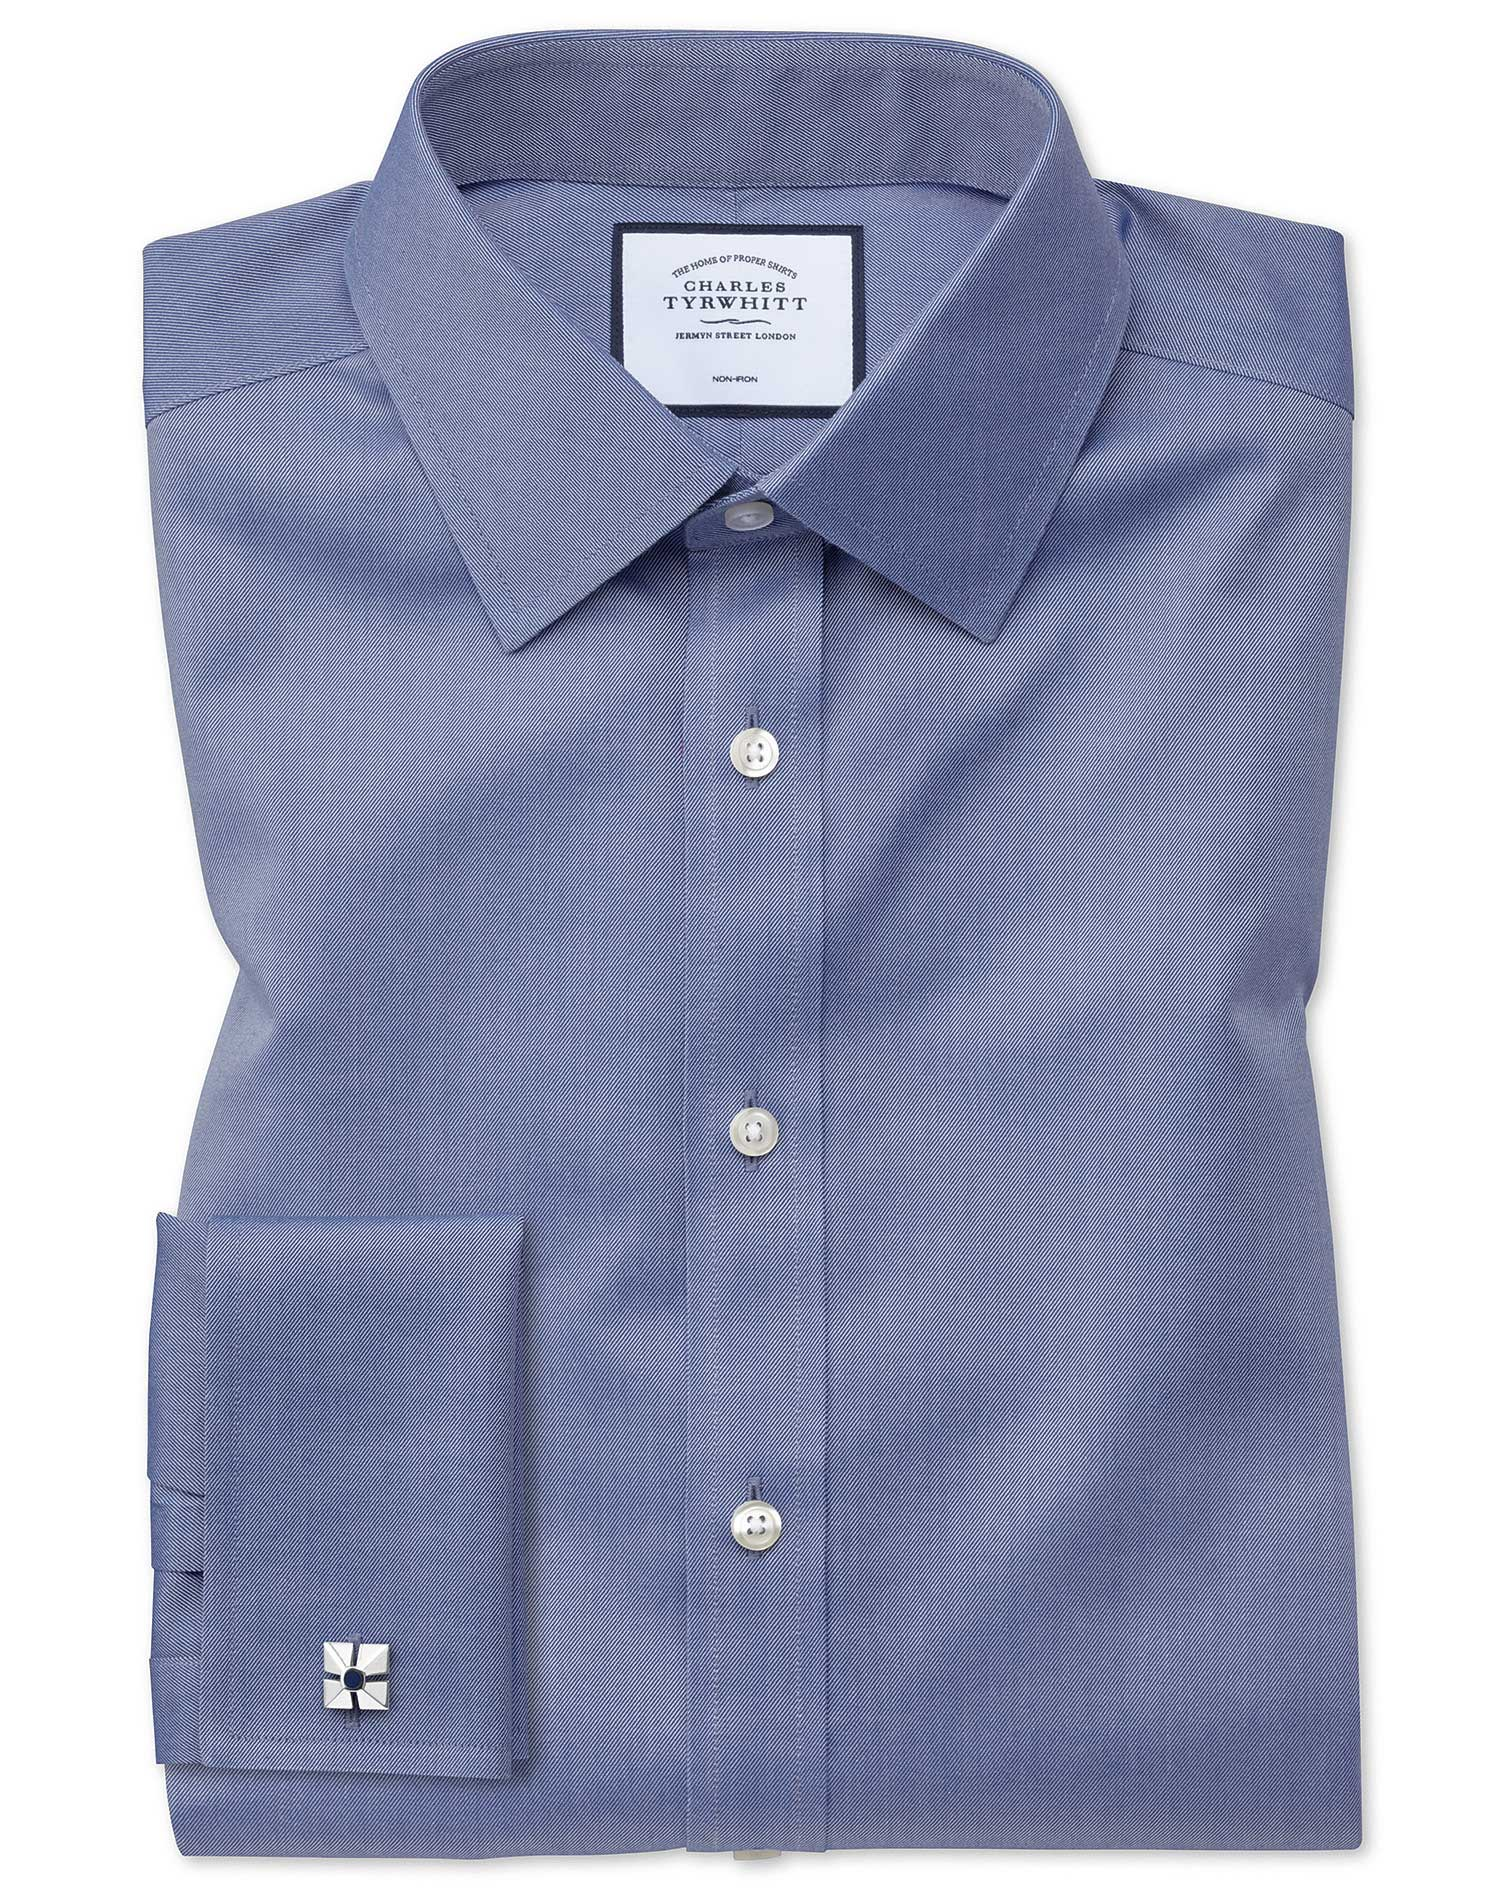 Classic Fit Non-Iron Twill Mid Blue Cotton Formal Shirt Double Cuff Size 20/37 by Charles Tyrwhitt